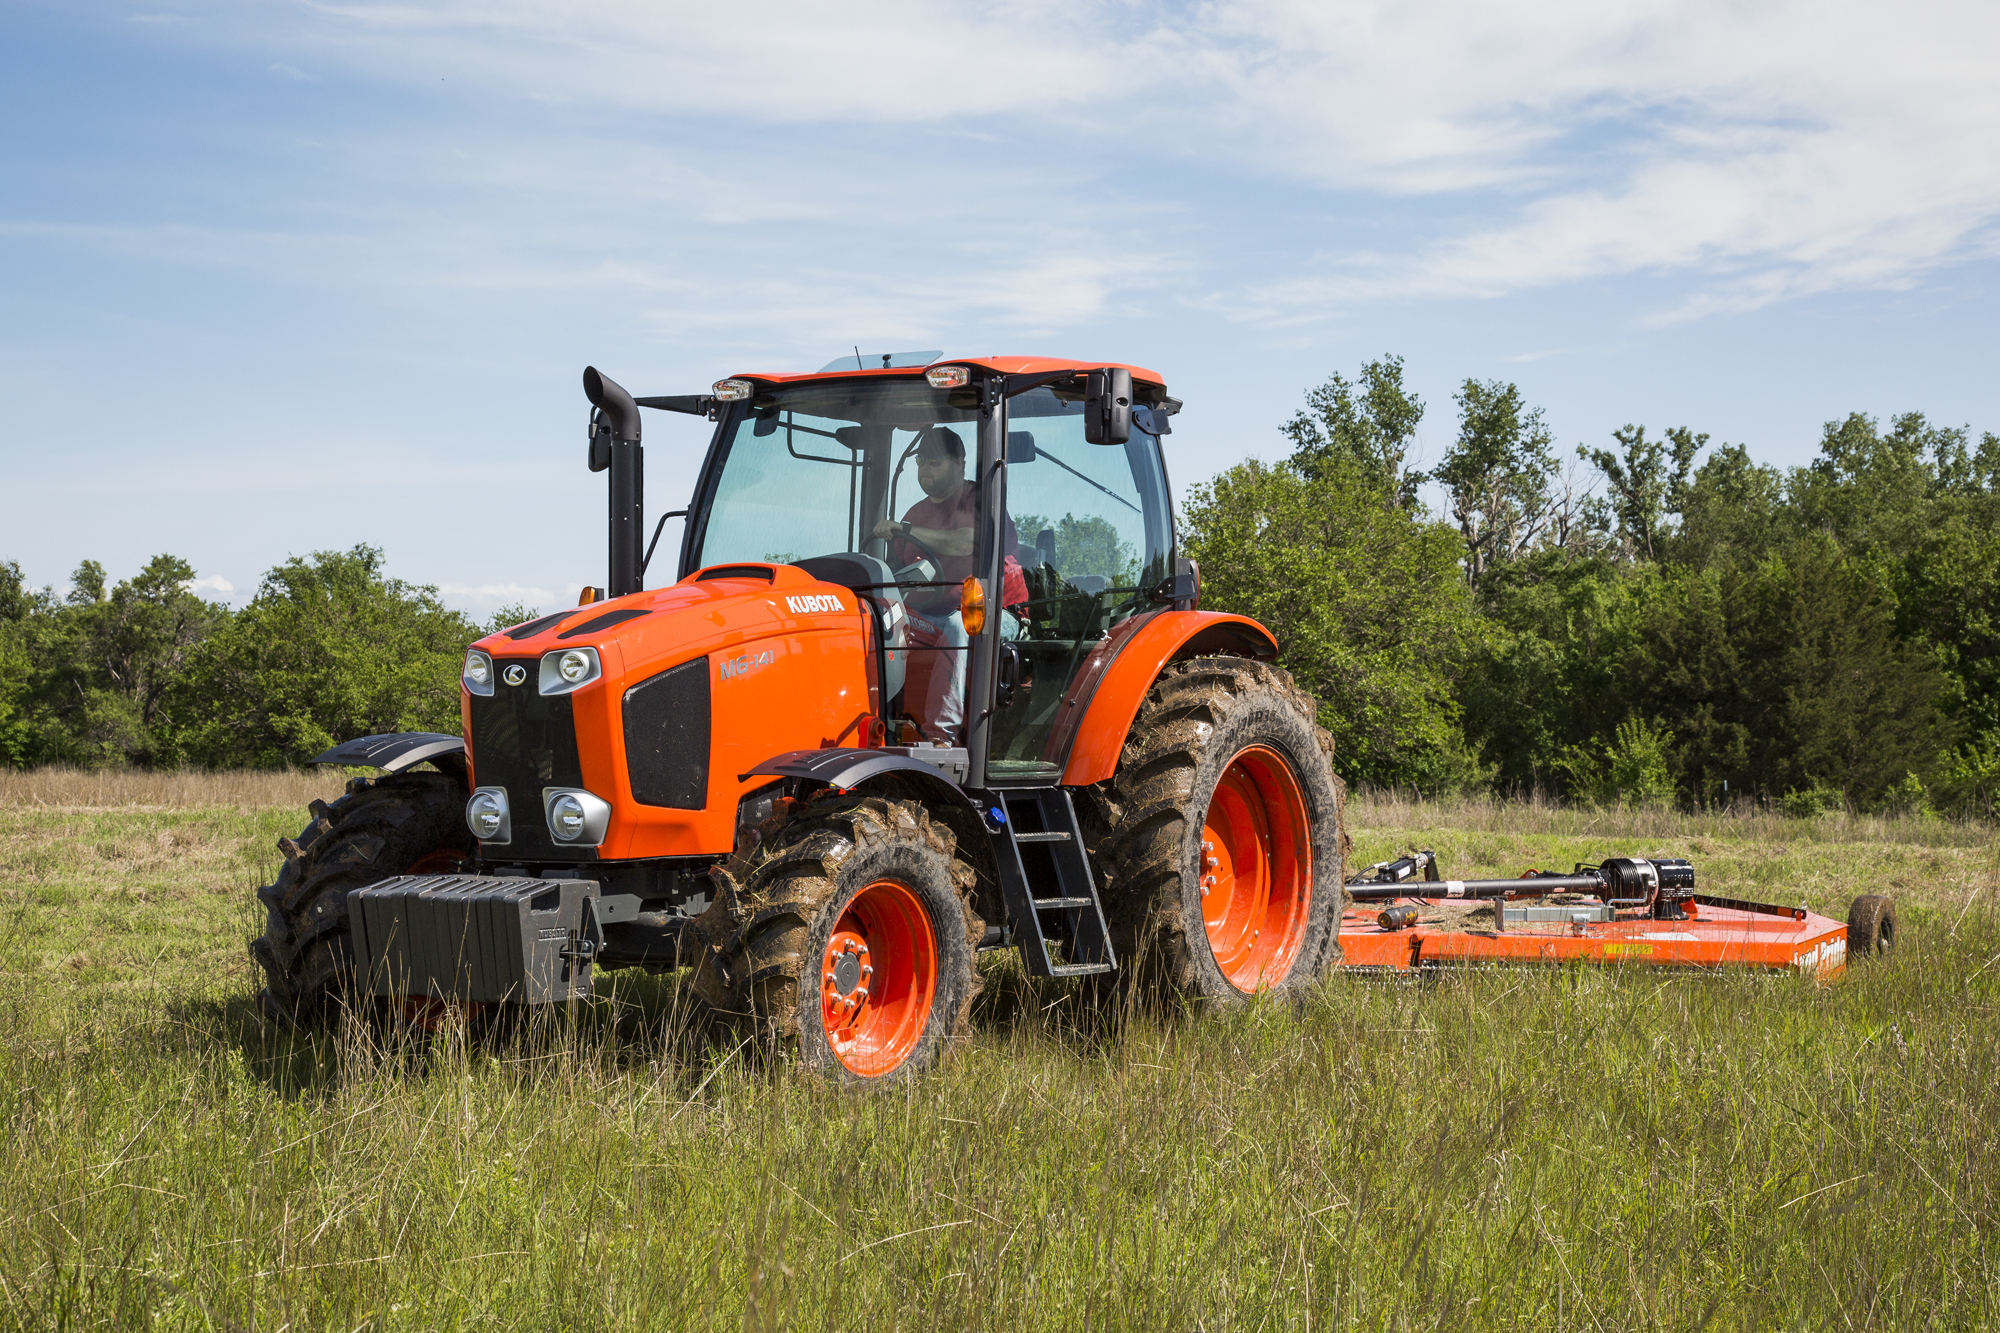 New Kubota Tractors : Kubota introduces new m series utility tractor line with